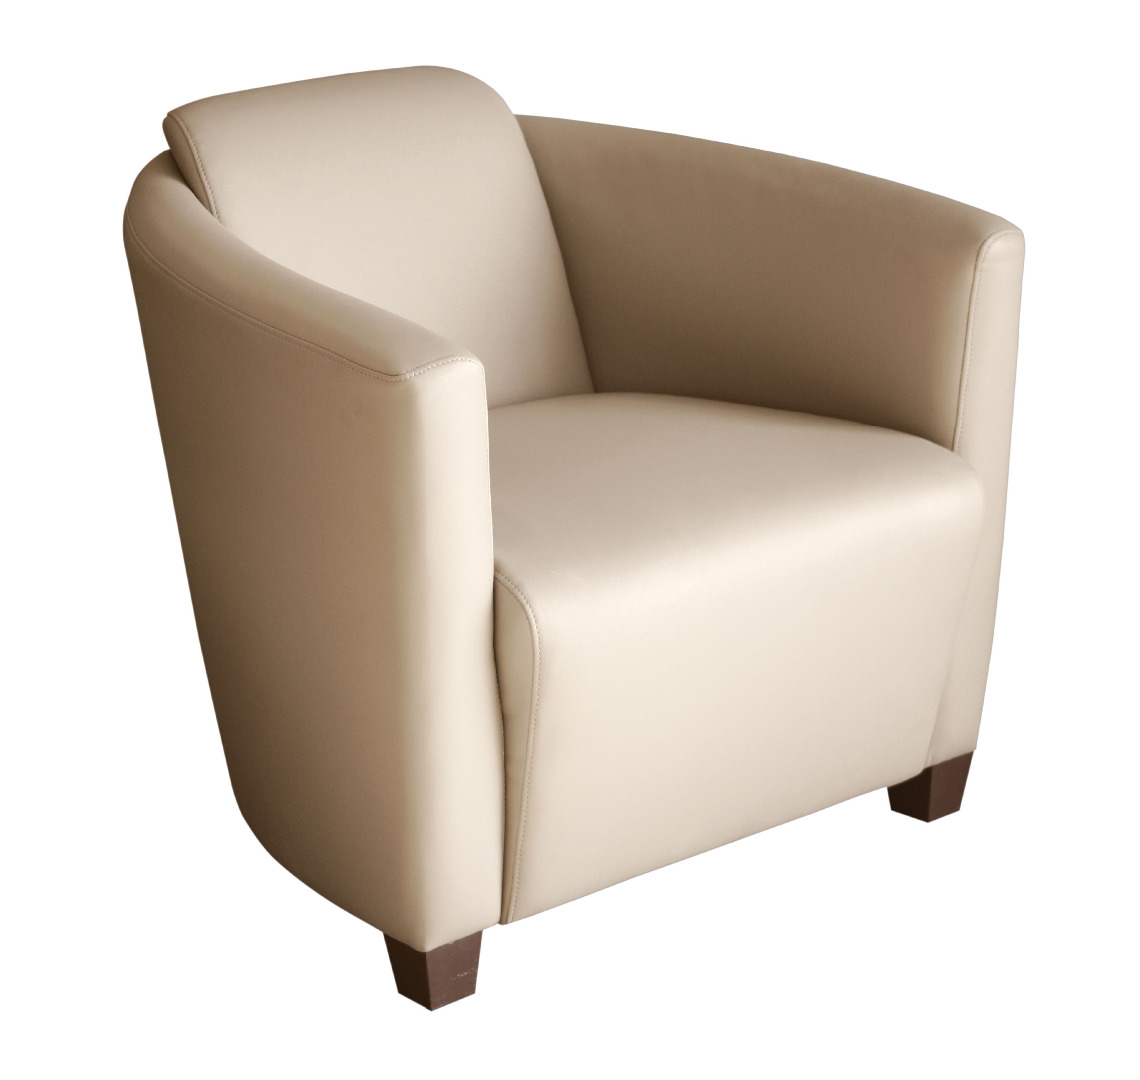 Flo Club Bonded Leather Chair Office Furniture Warehouse